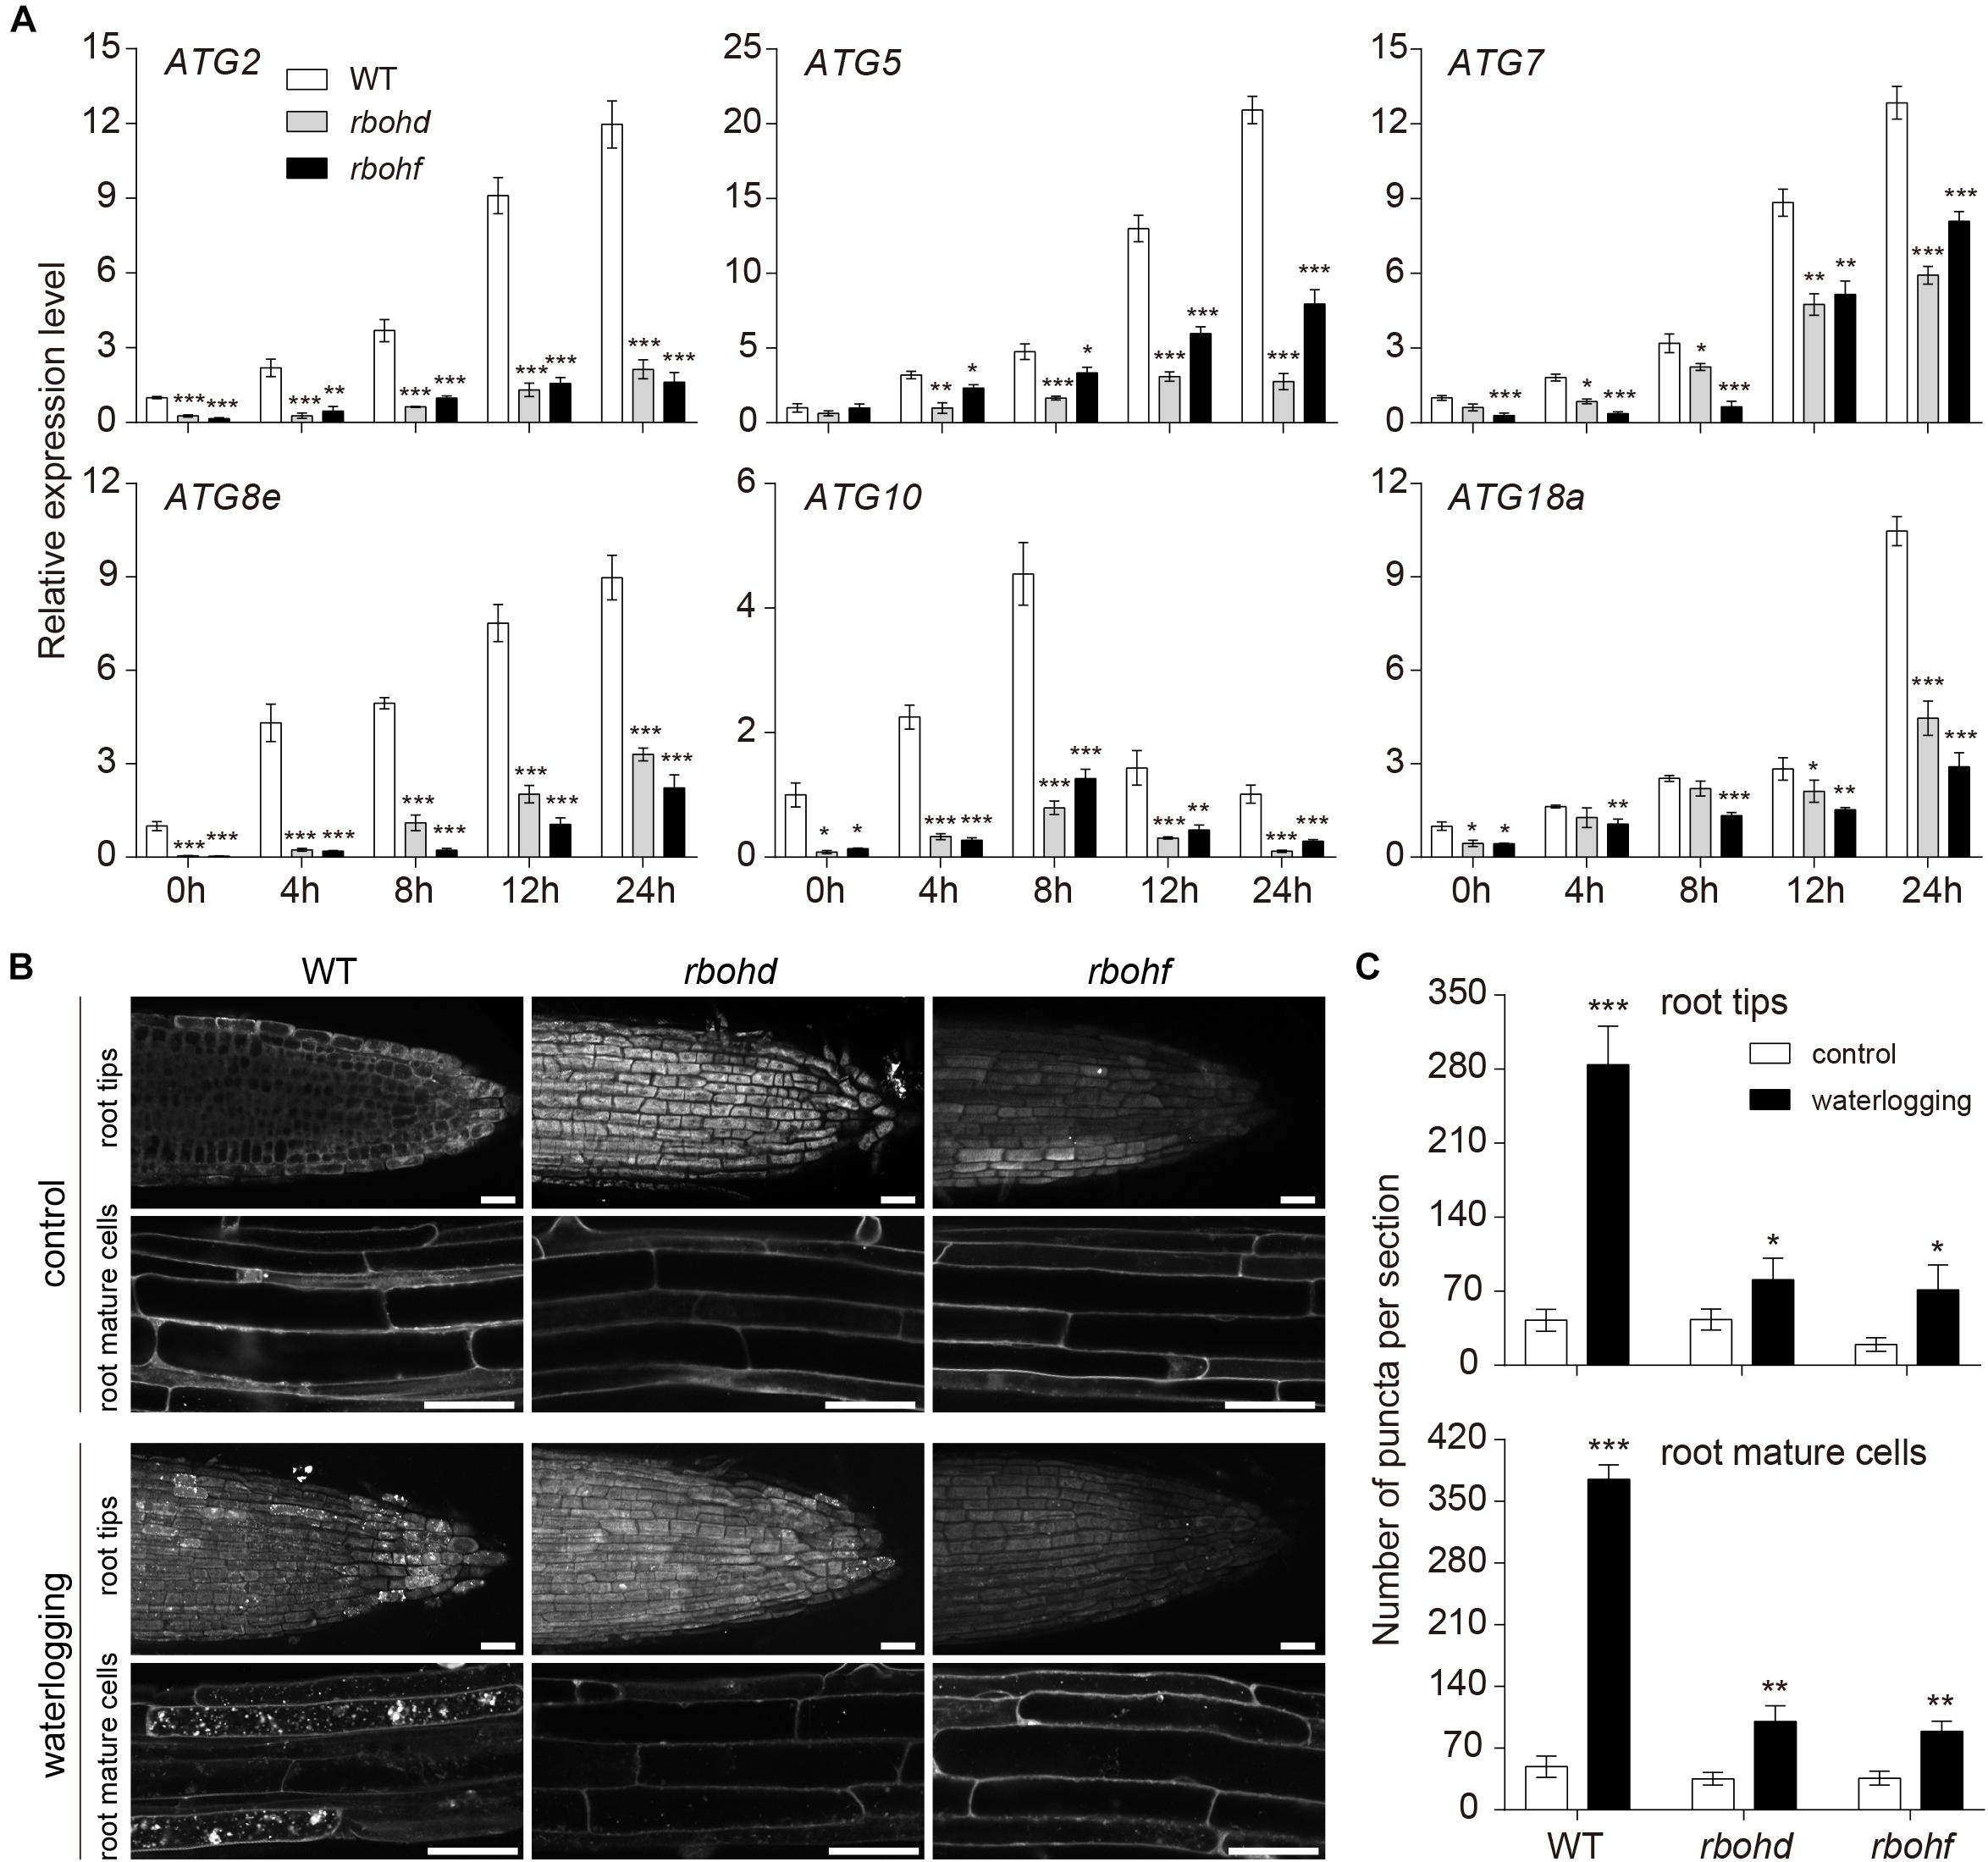 Frontiers | Effect of Waterlogging-Induced Autophagy on Programmed